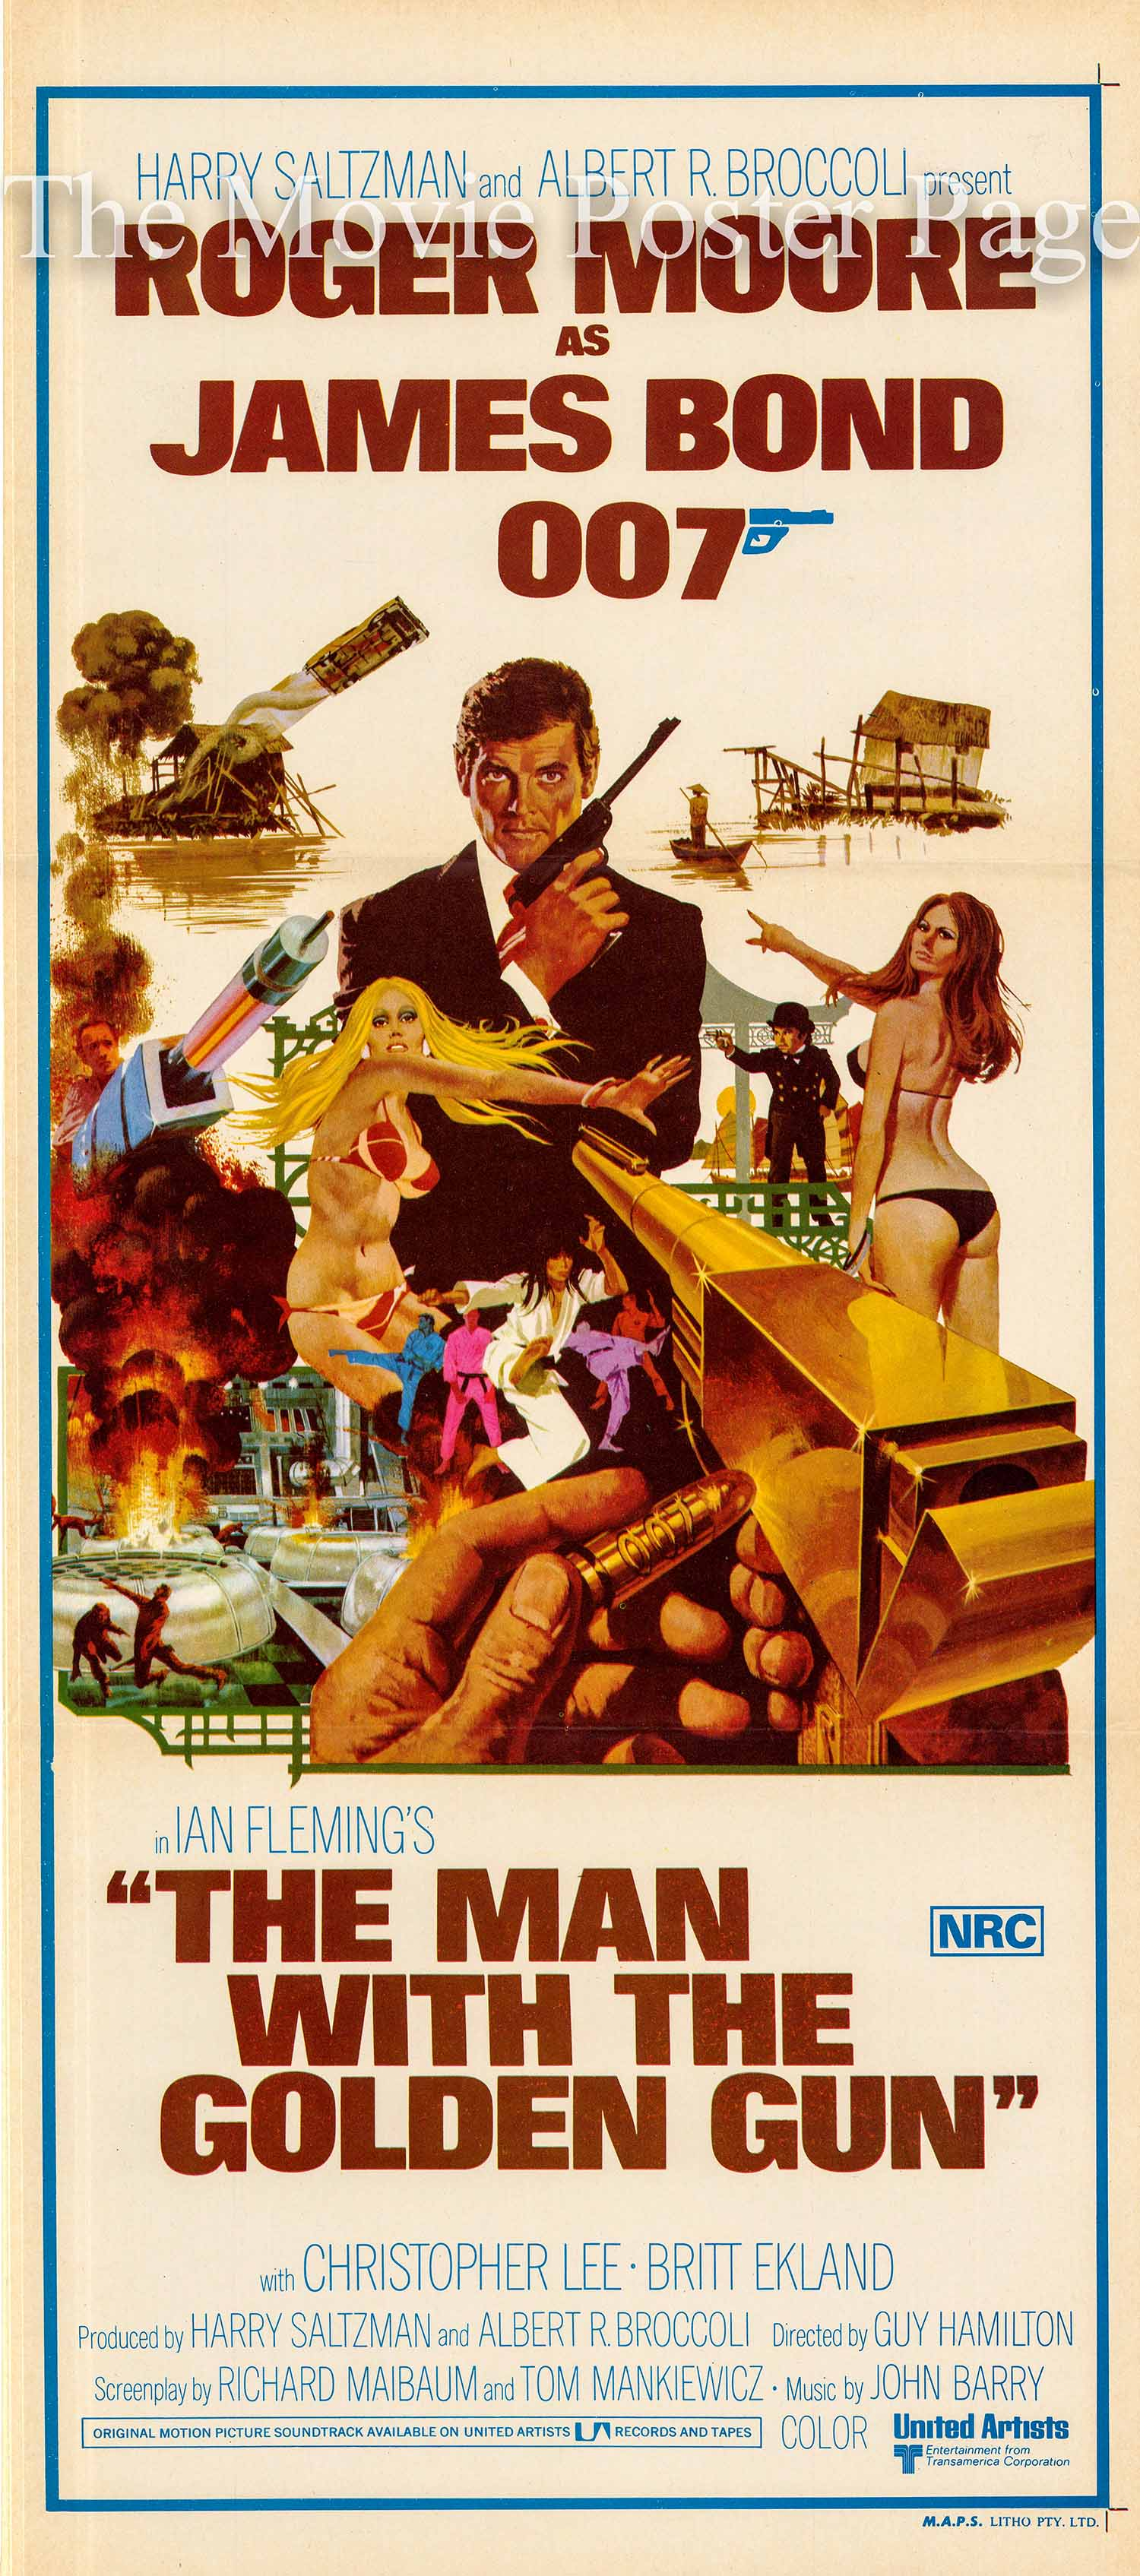 Pictured here is an Australian daybill promotional poster made based on a design by Robert McGinnis to promote the 1974 Guy Hamilton film The Man with the Golden Gun starring Roger Moore as James Bond.